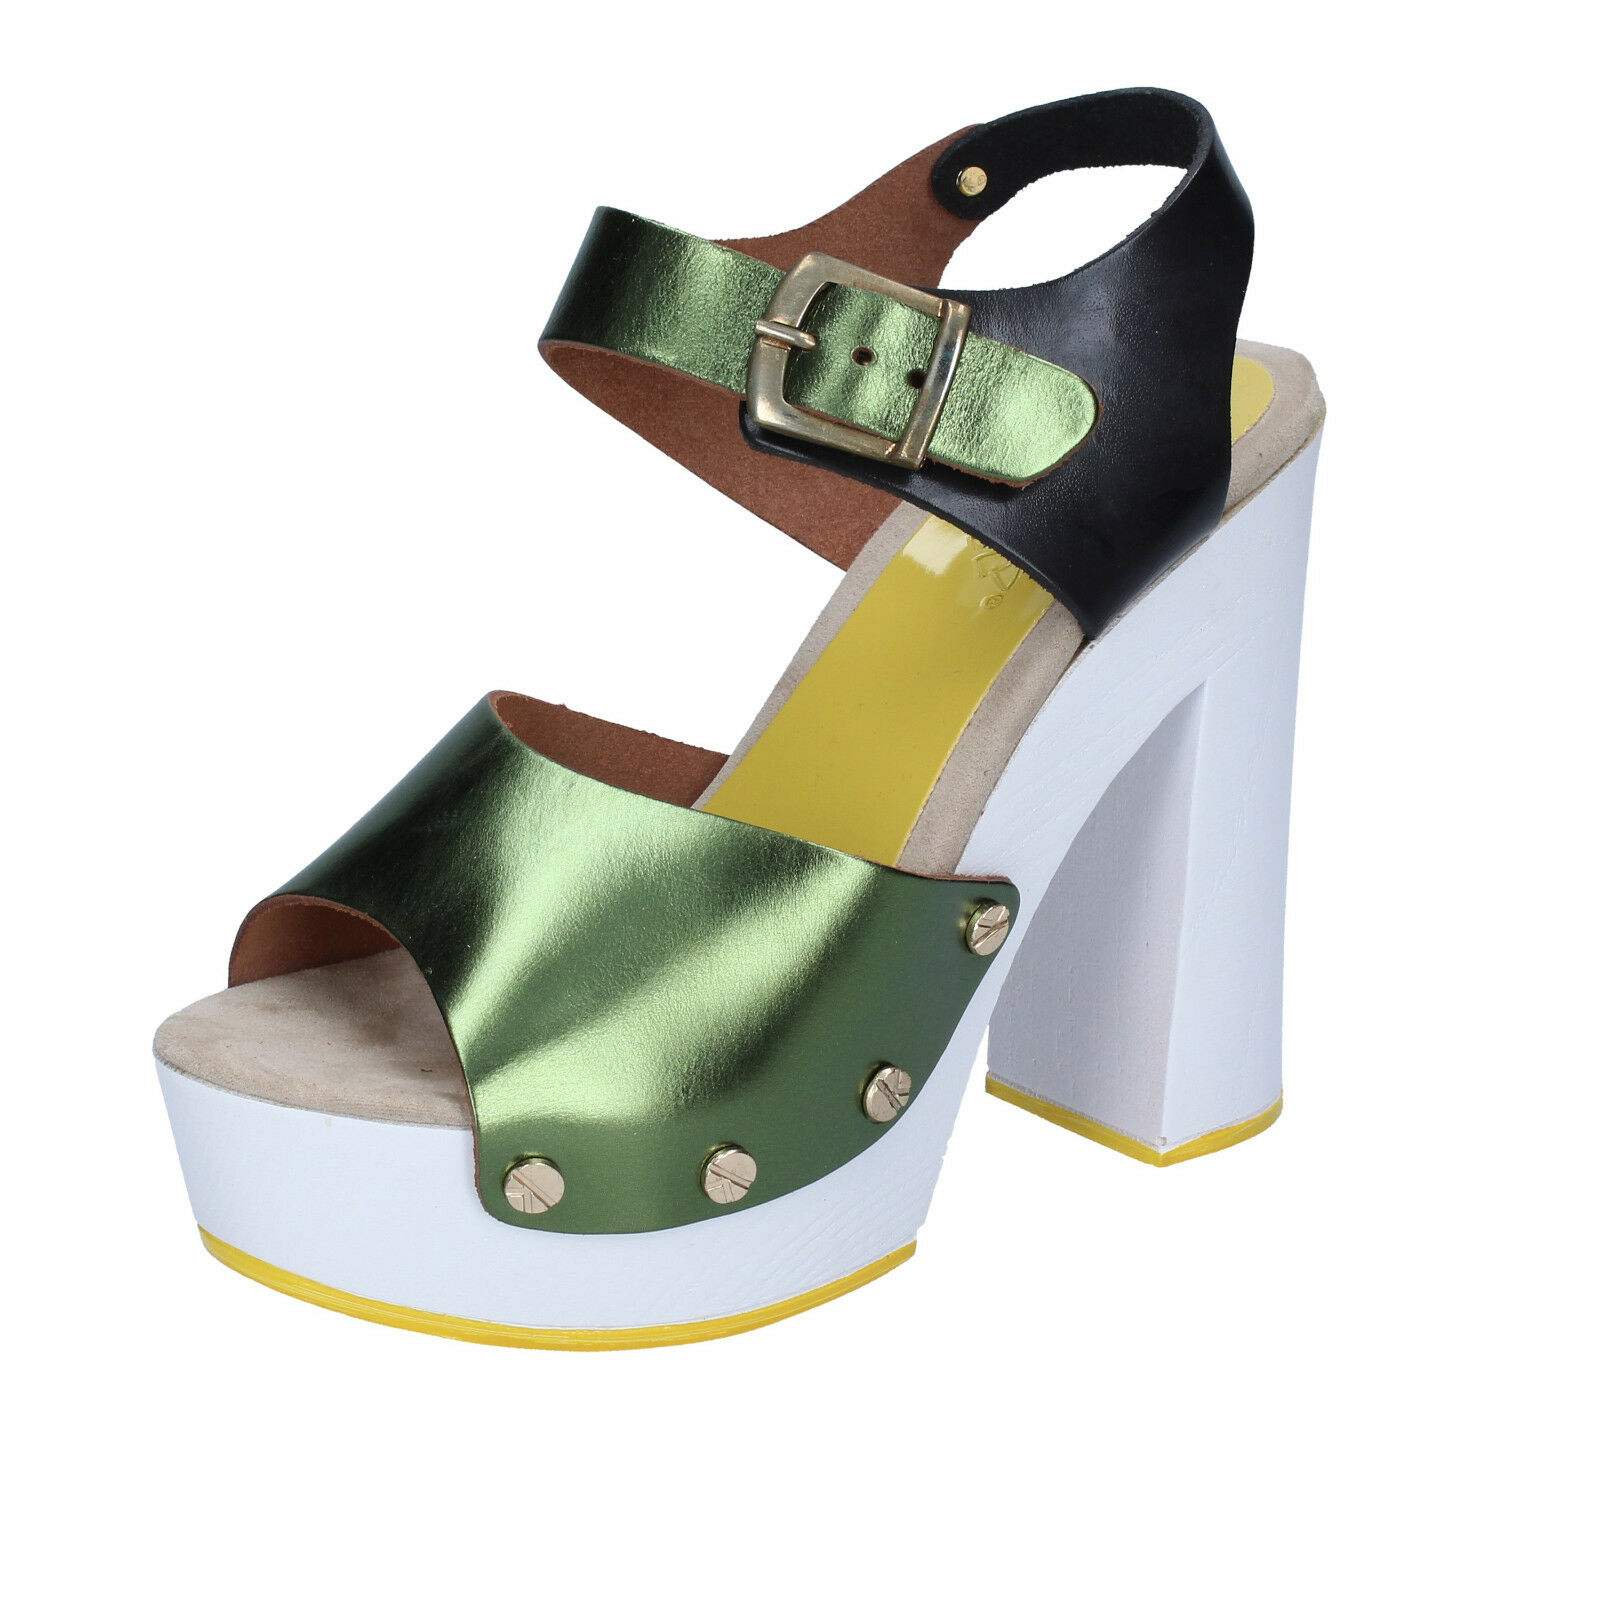 Women's shoes Suky Brand 39 Sandals Green Black Leather bs18-39